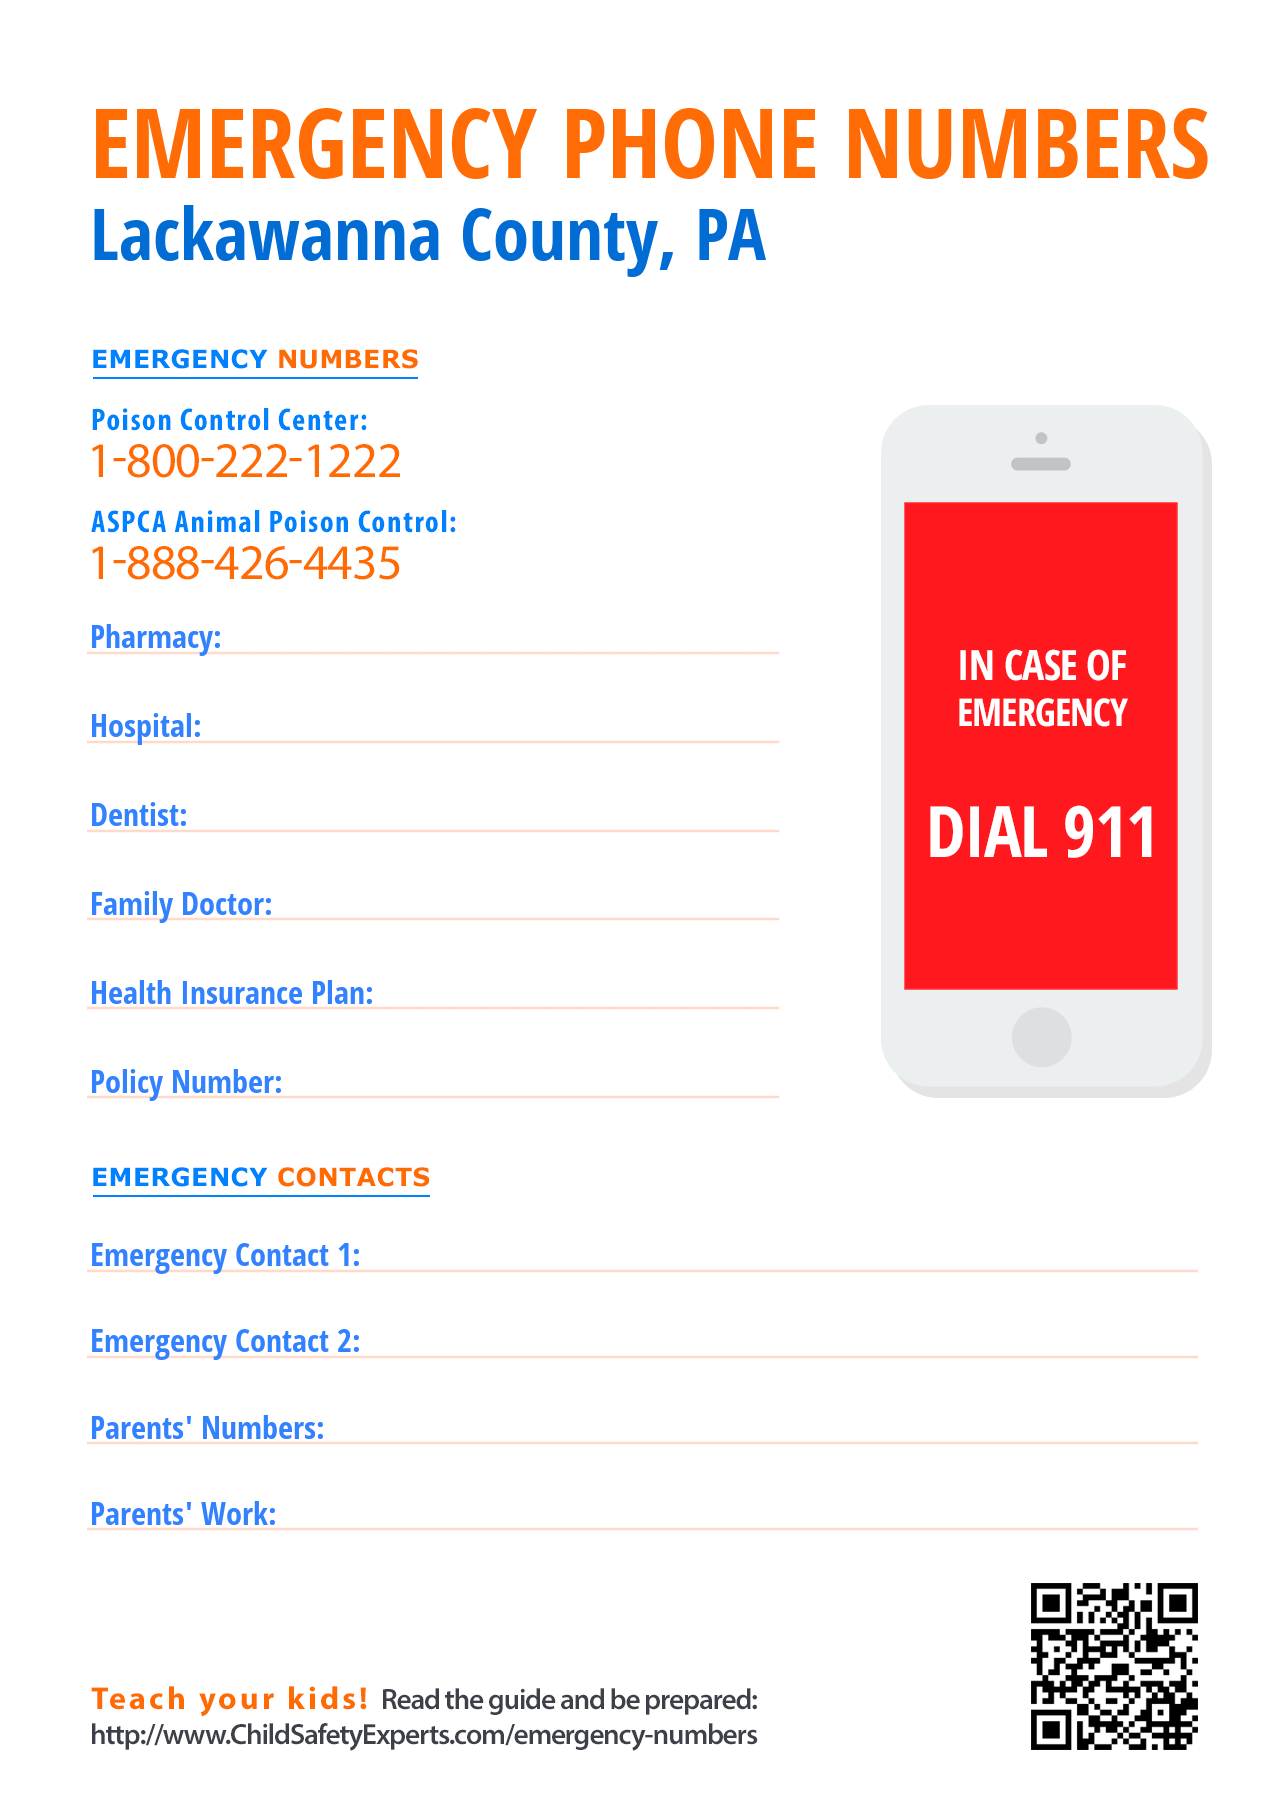 Important emergency phone numbers in Lackawanna County, Pennsylvania